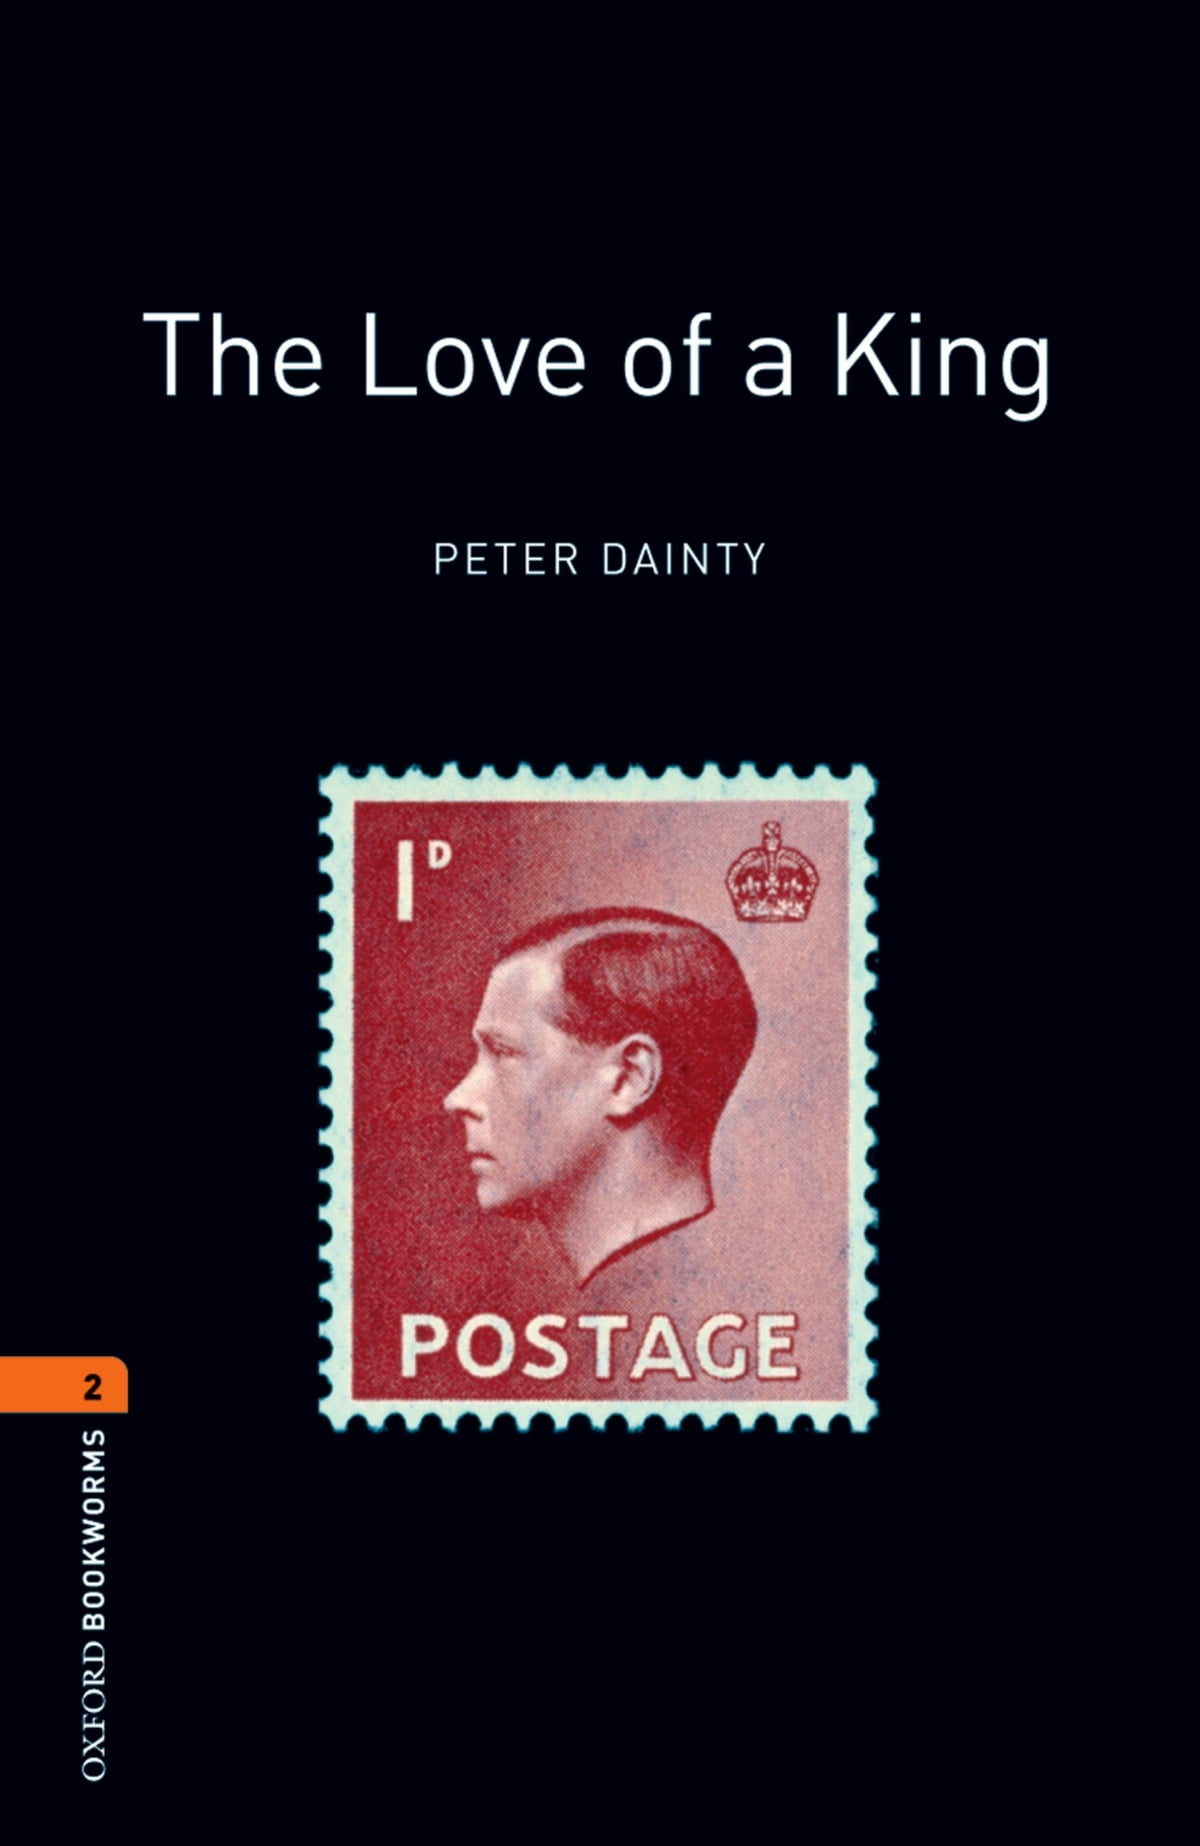 Oxford Bookworms Library The Love Of A King Level 2 Oxford Bookworms Library Ebook